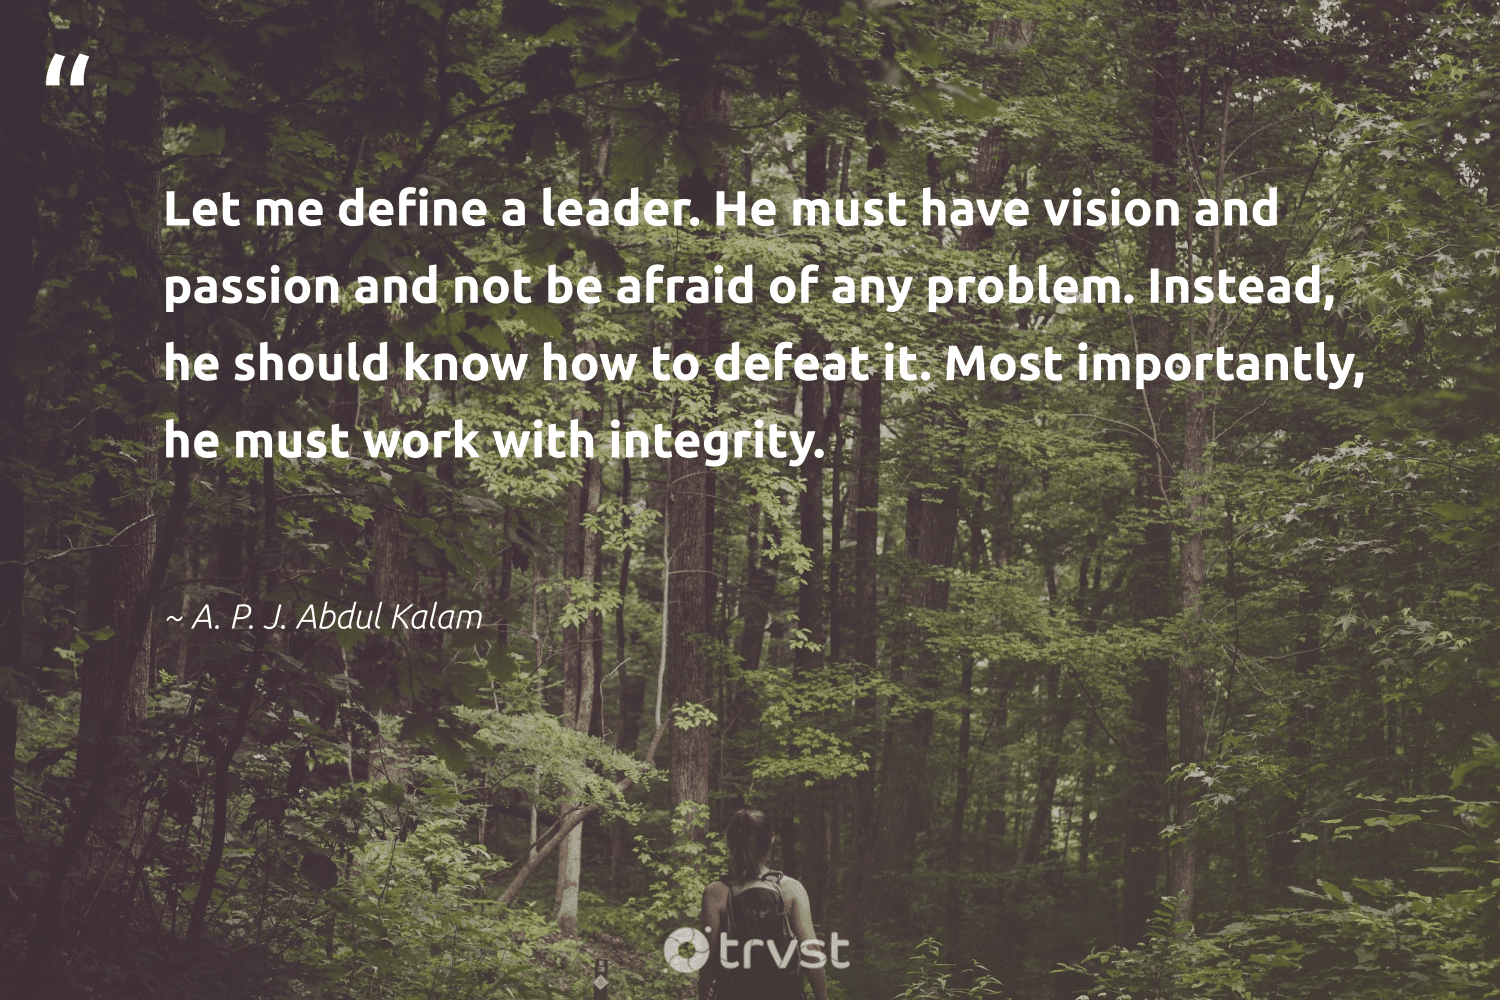 """""""Let me define a leader. He must have vision and passion and not be afraid of any problem. Instead, he should know how to defeat it. Most importantly, he must work with integrity.""""  - A. P. J. Abdul Kalam #trvst #quotes #passion #futureofwork #beinspired #softskills #dotherightthing #nevergiveup #takeaction #begreat #collectiveaction #ecoconscious"""